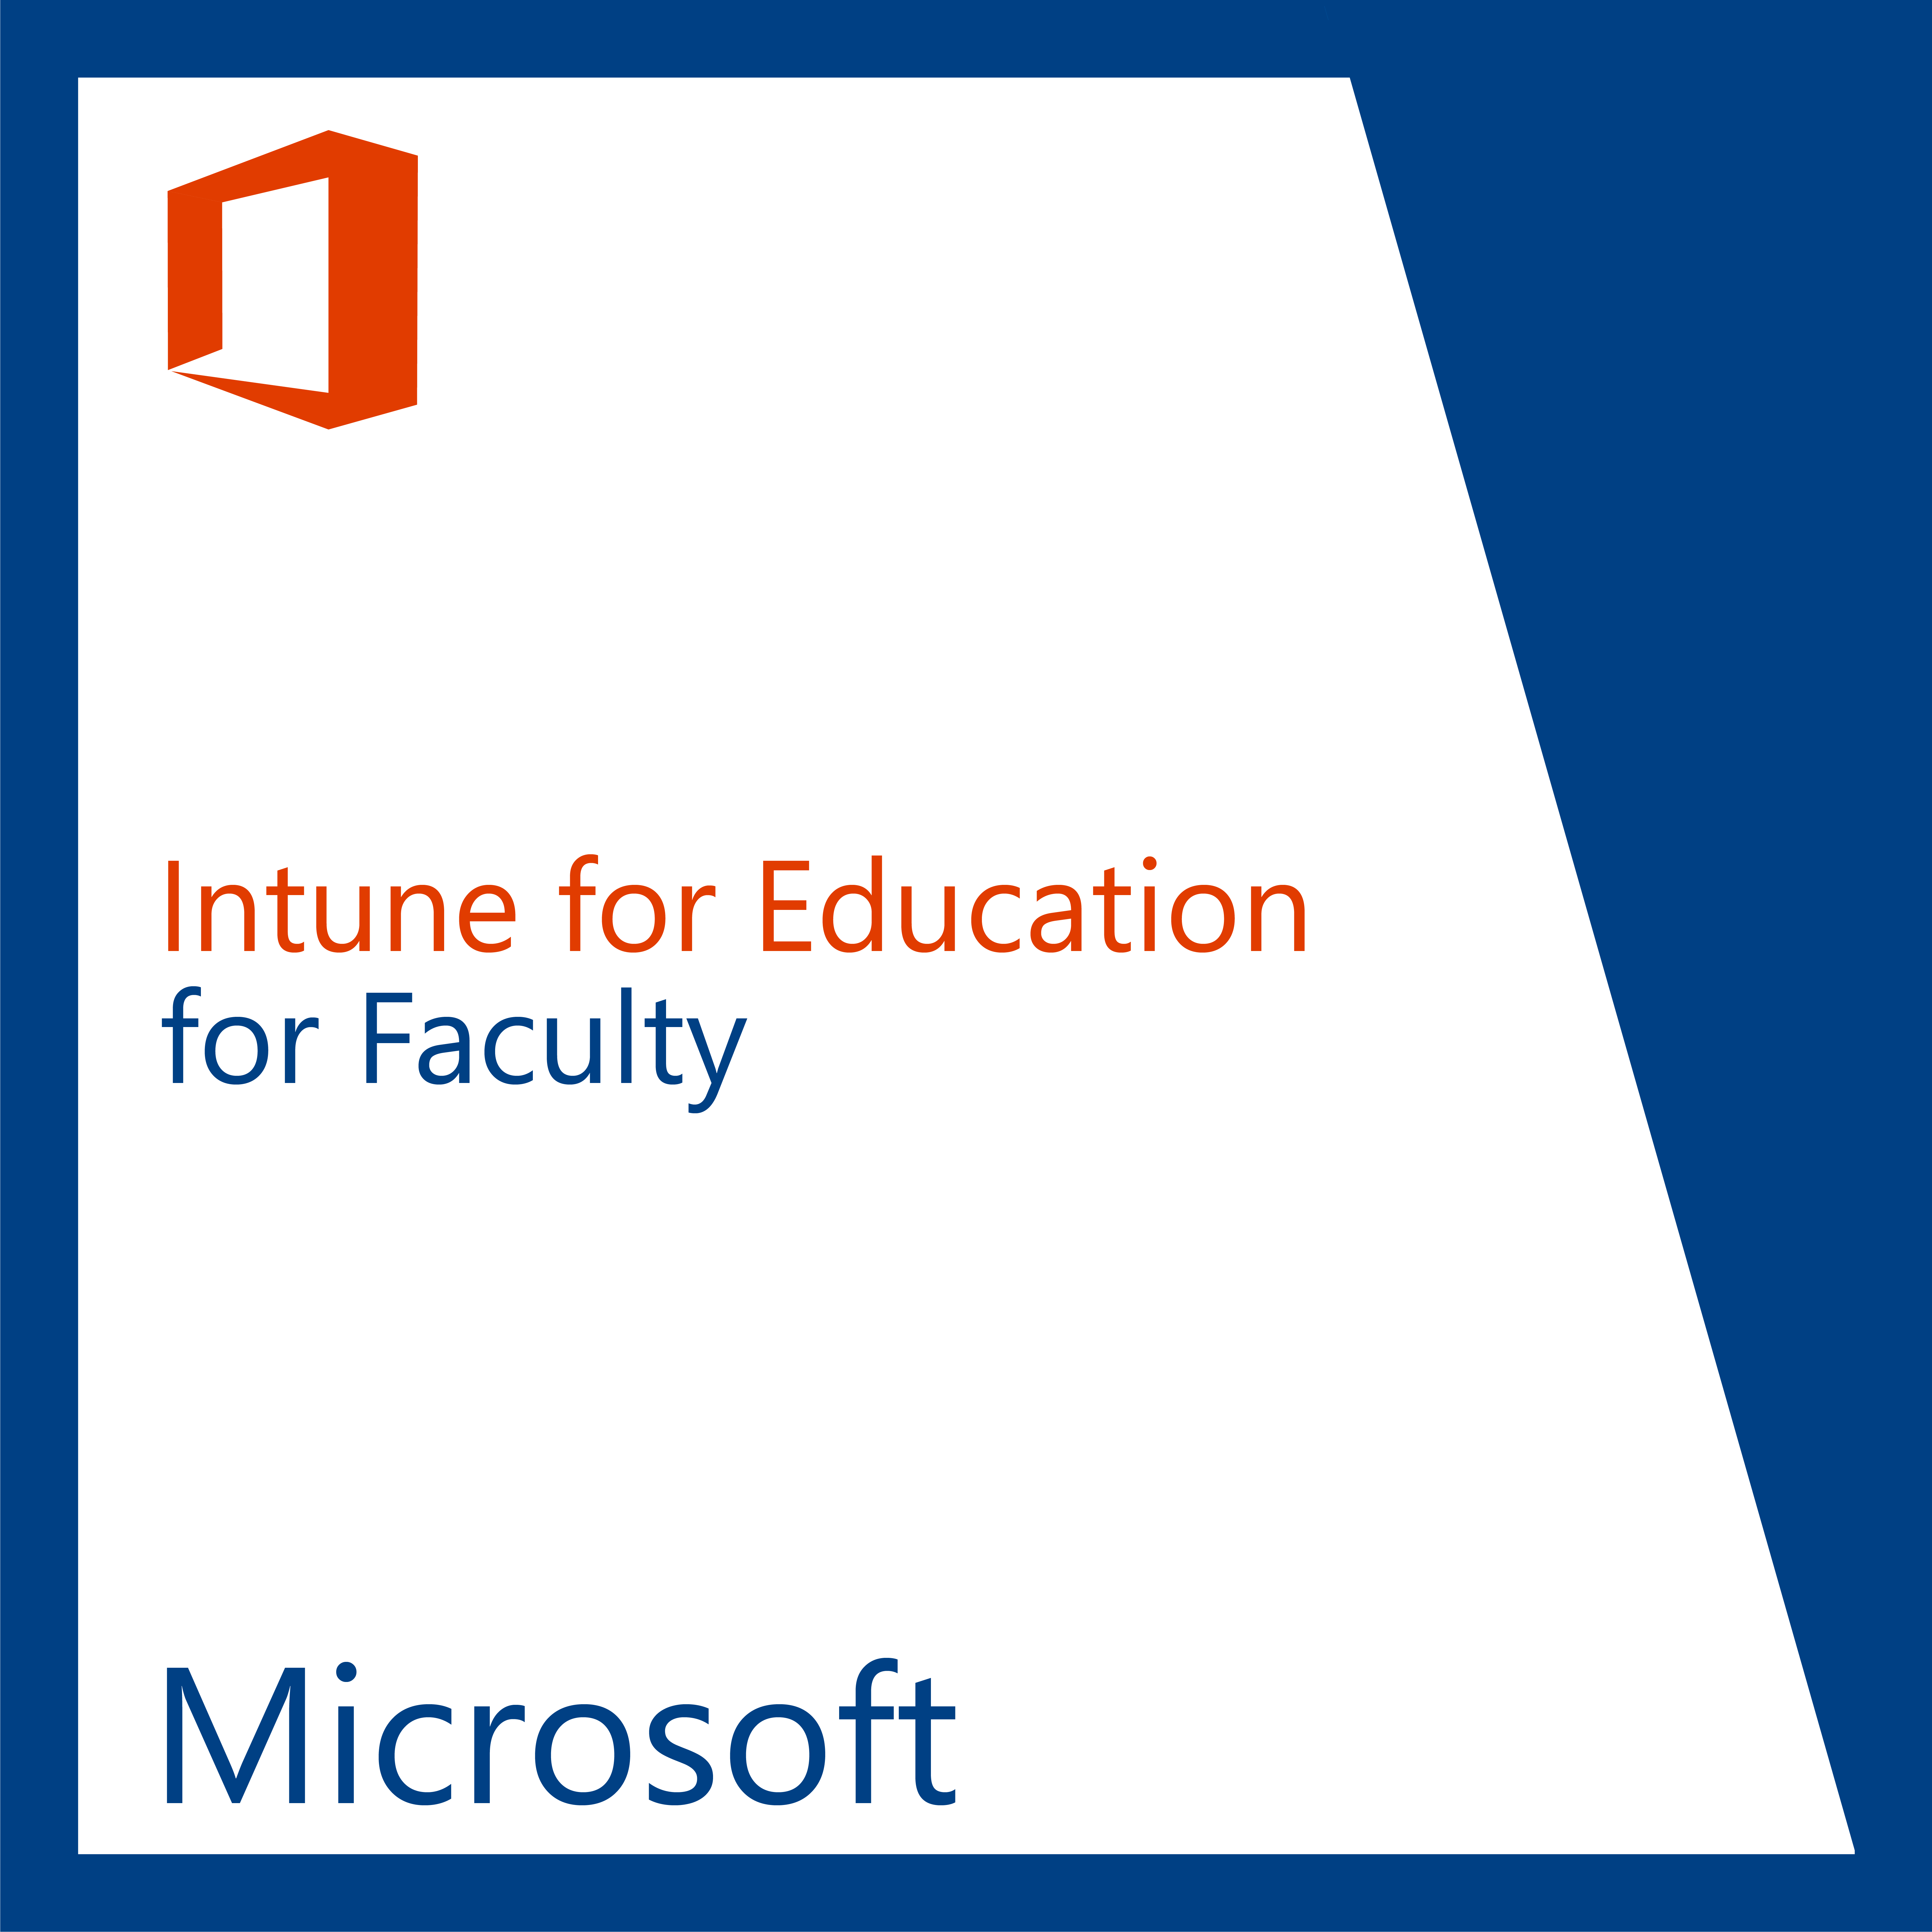 intune-for-education-for-faculty